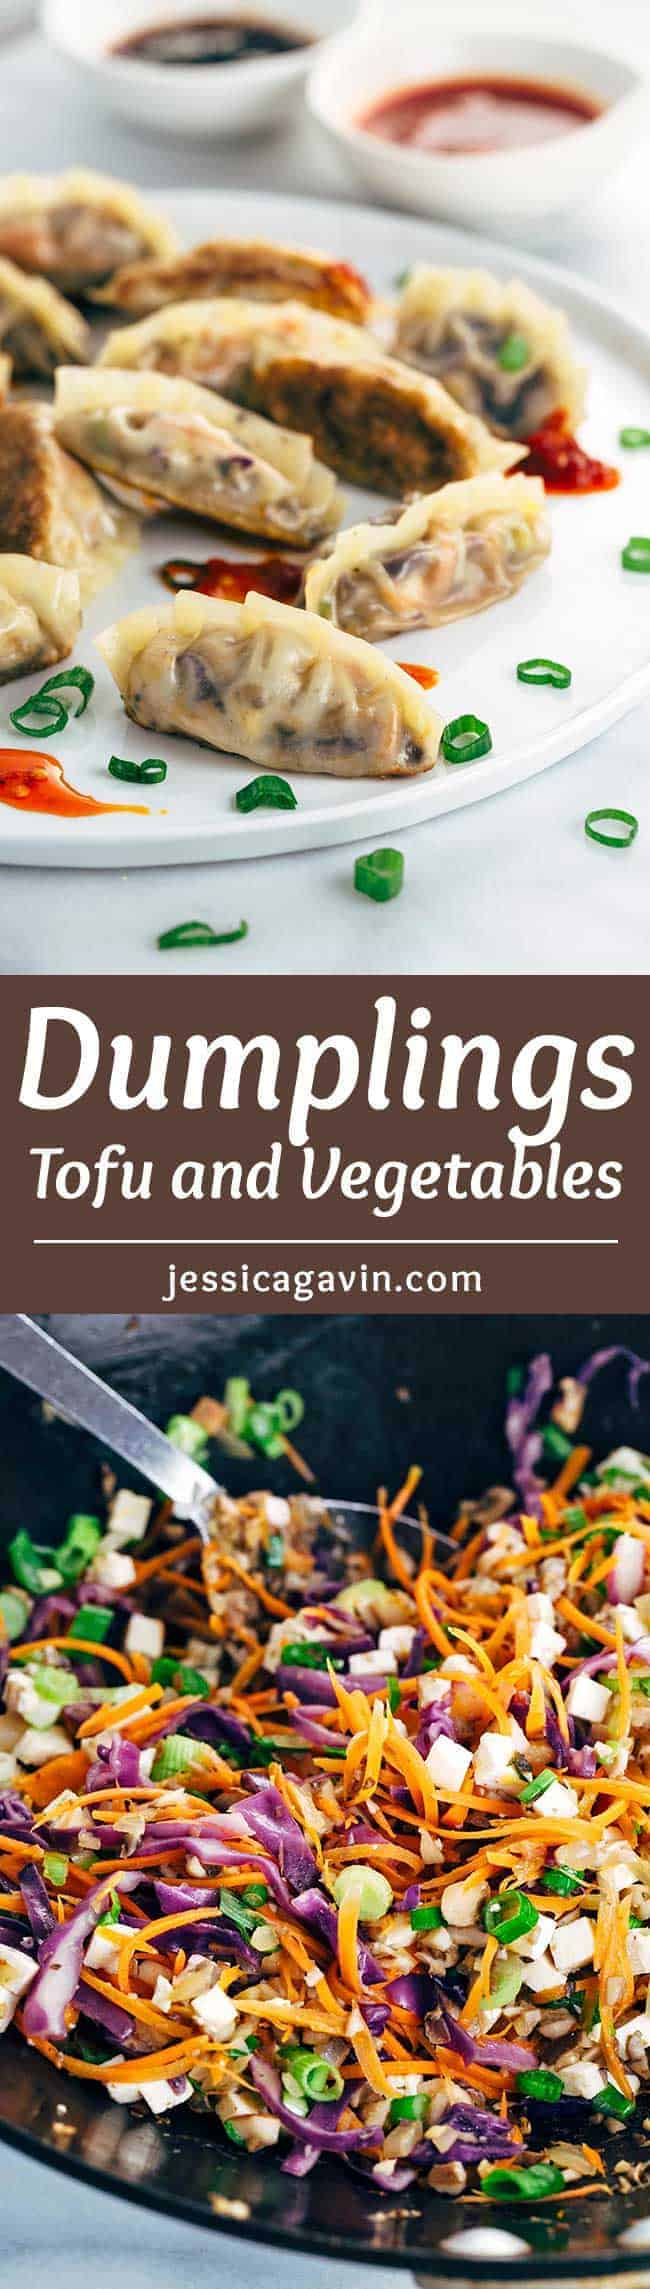 Pan Fried Crispy Vegetable Tofu Dumplings - A simple Chinese recipe that is so fun to make! An irresistible vegetarian appetizer dipped in your favorite sauce.